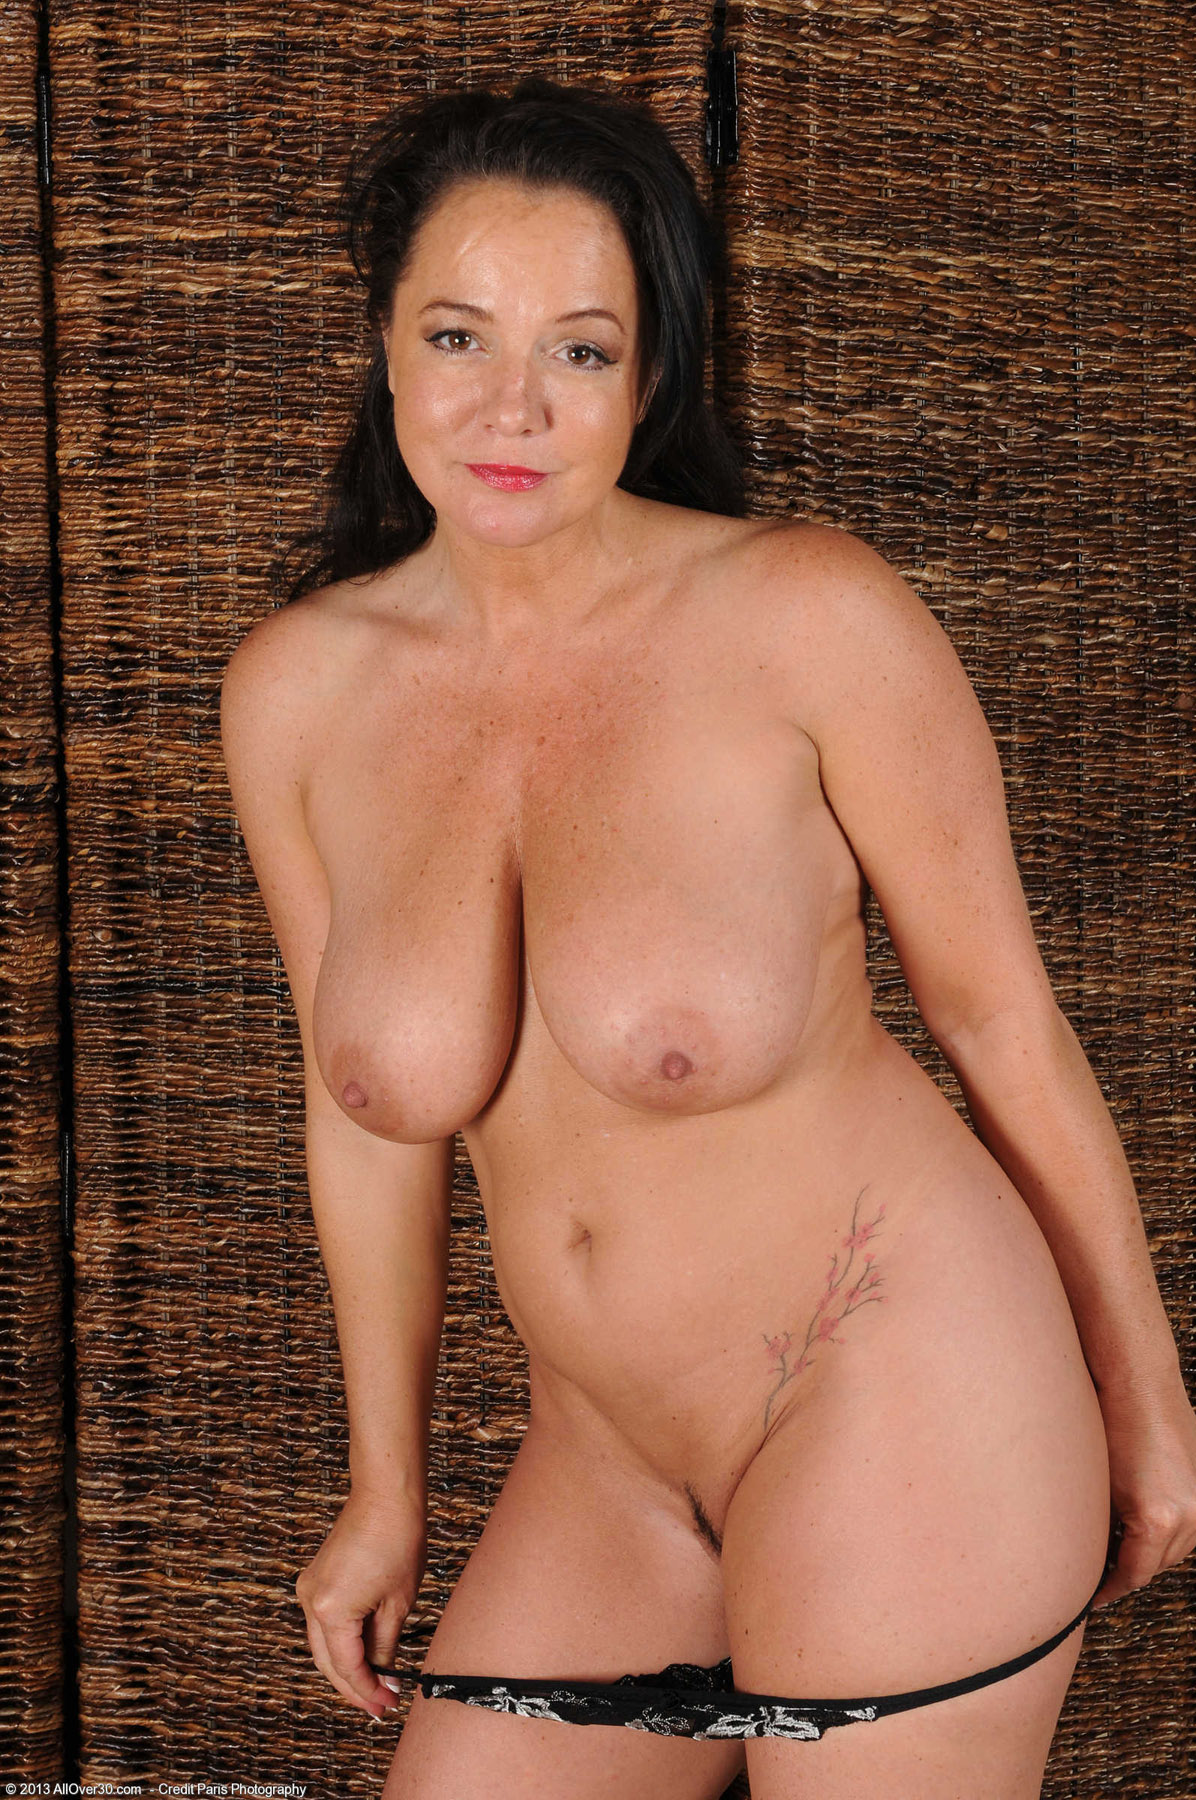 Delightful Mature pic of me nude